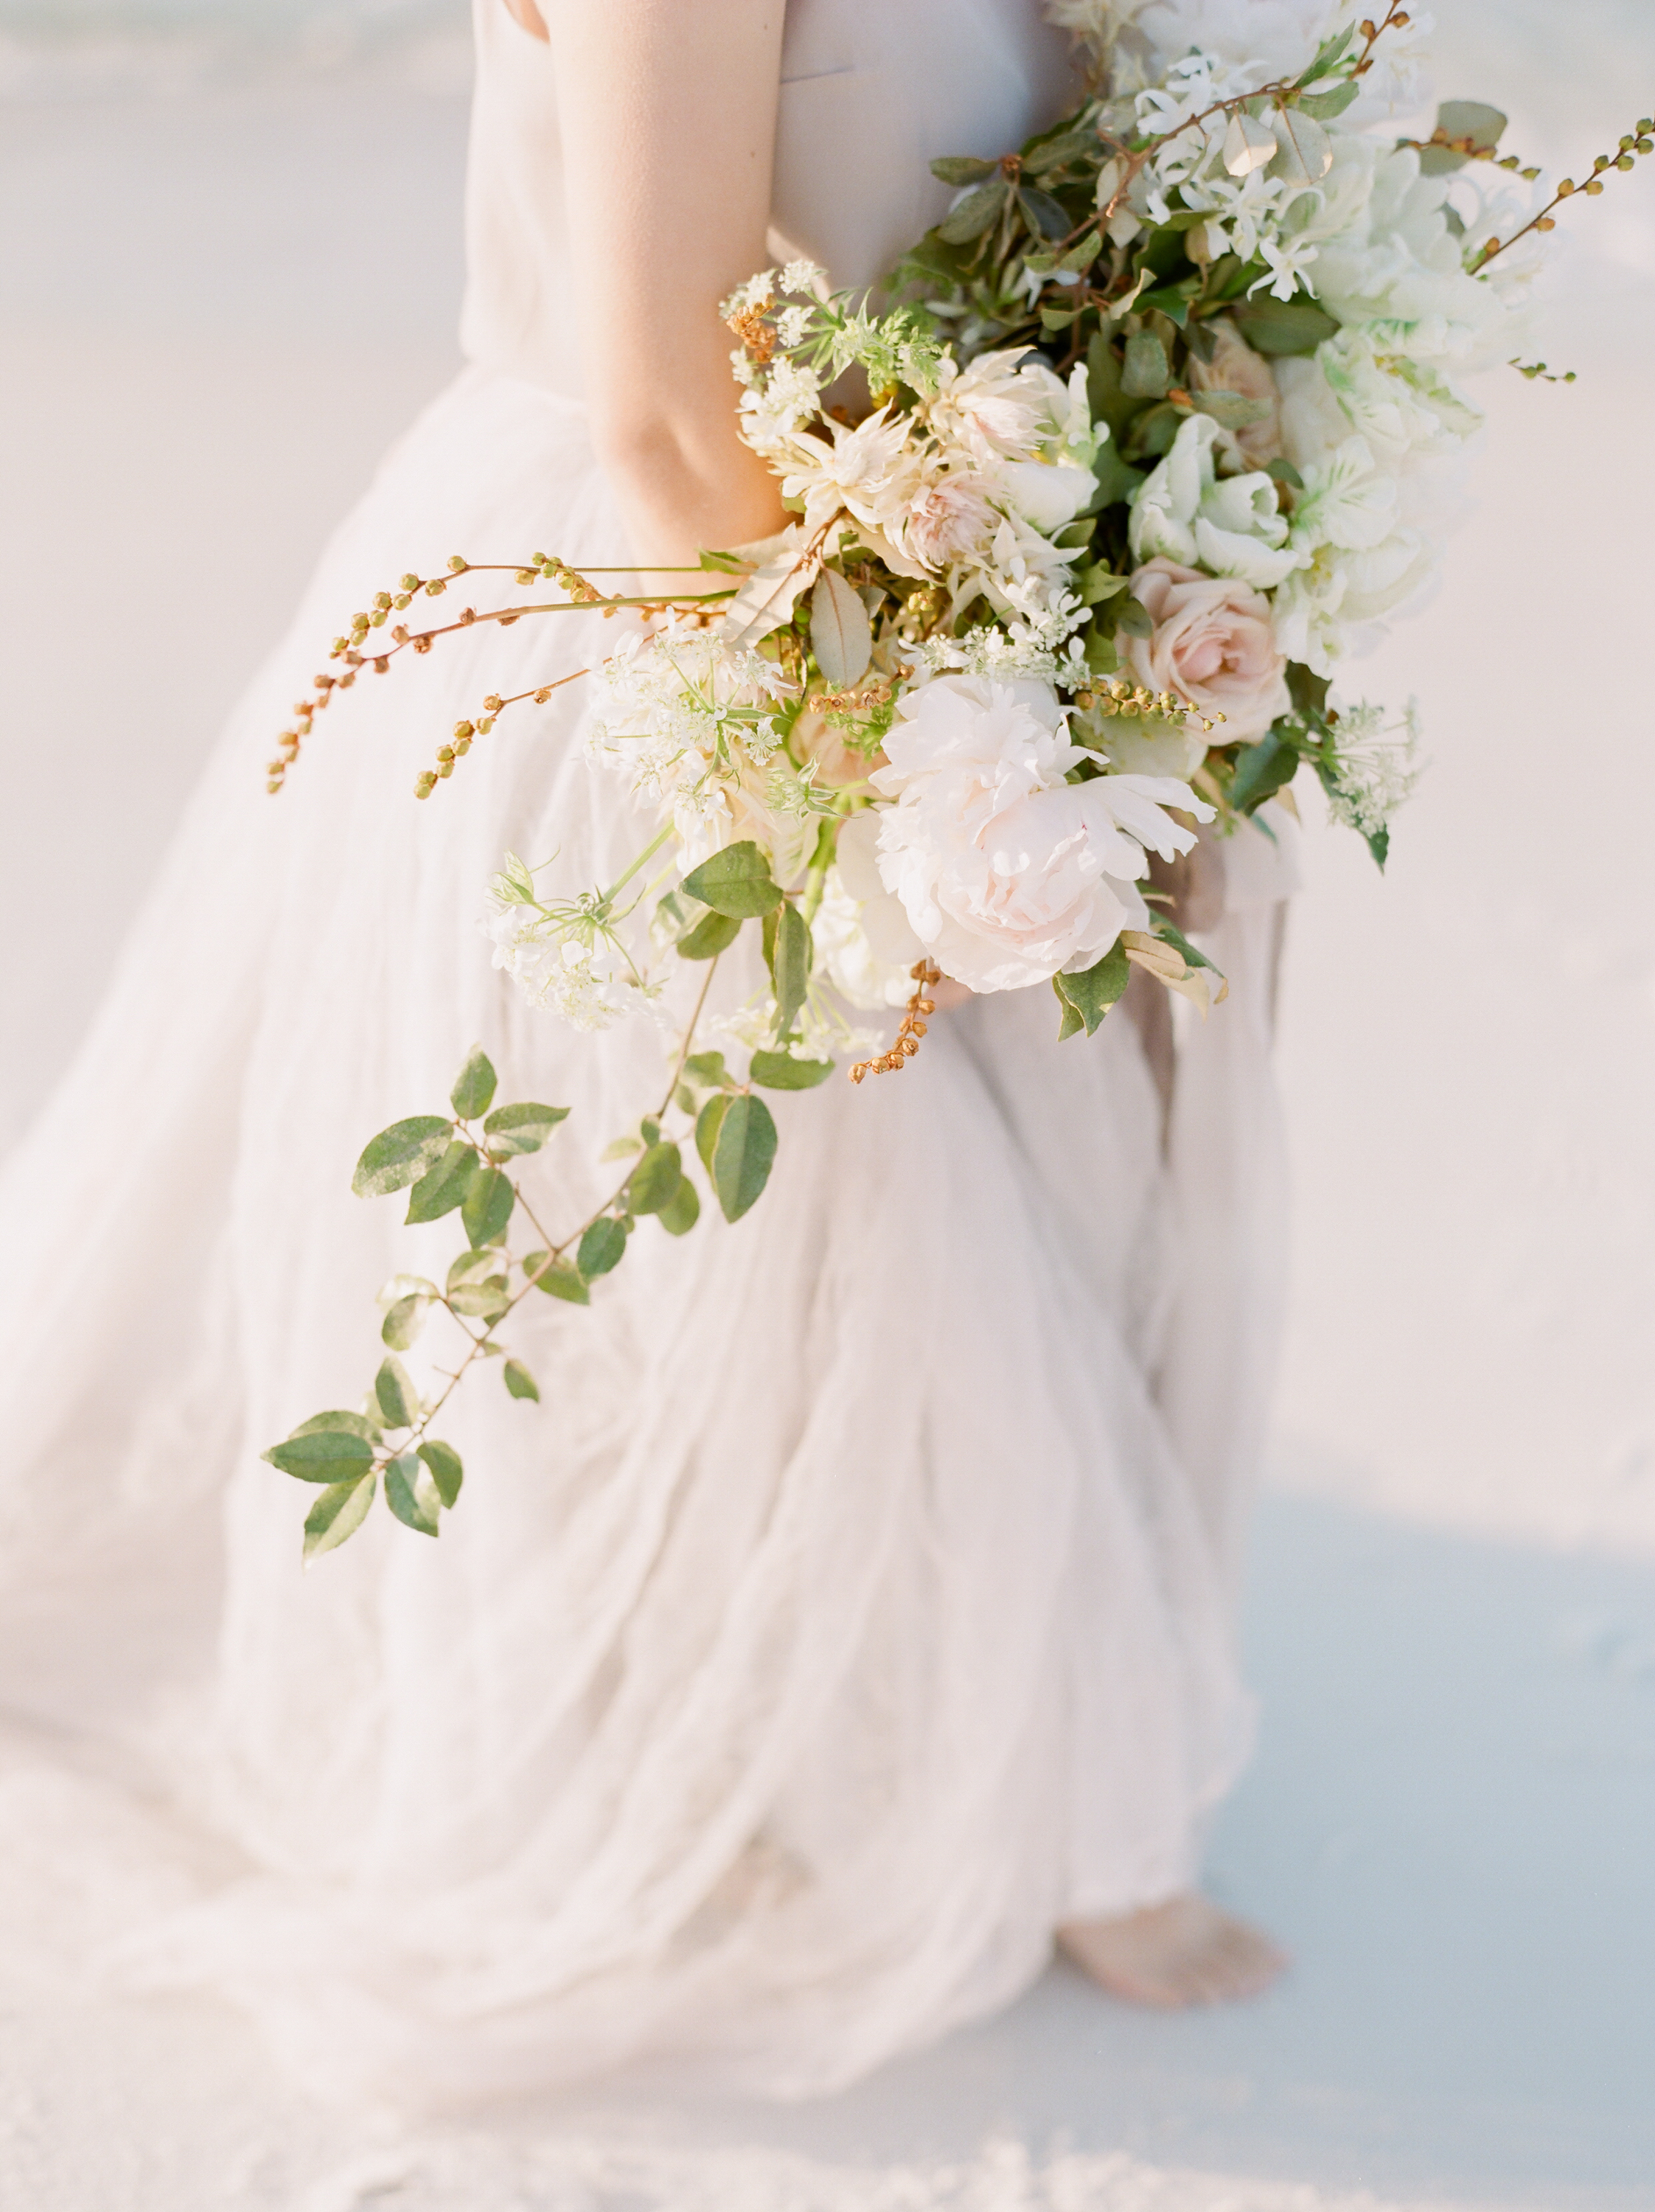 How To Book Your Wedding   Wedding Collections begin at $3,500 with a turnaround time of  3-4 weeks . We only accept a limited amount of weddings each year to best serve you!  Book Here.